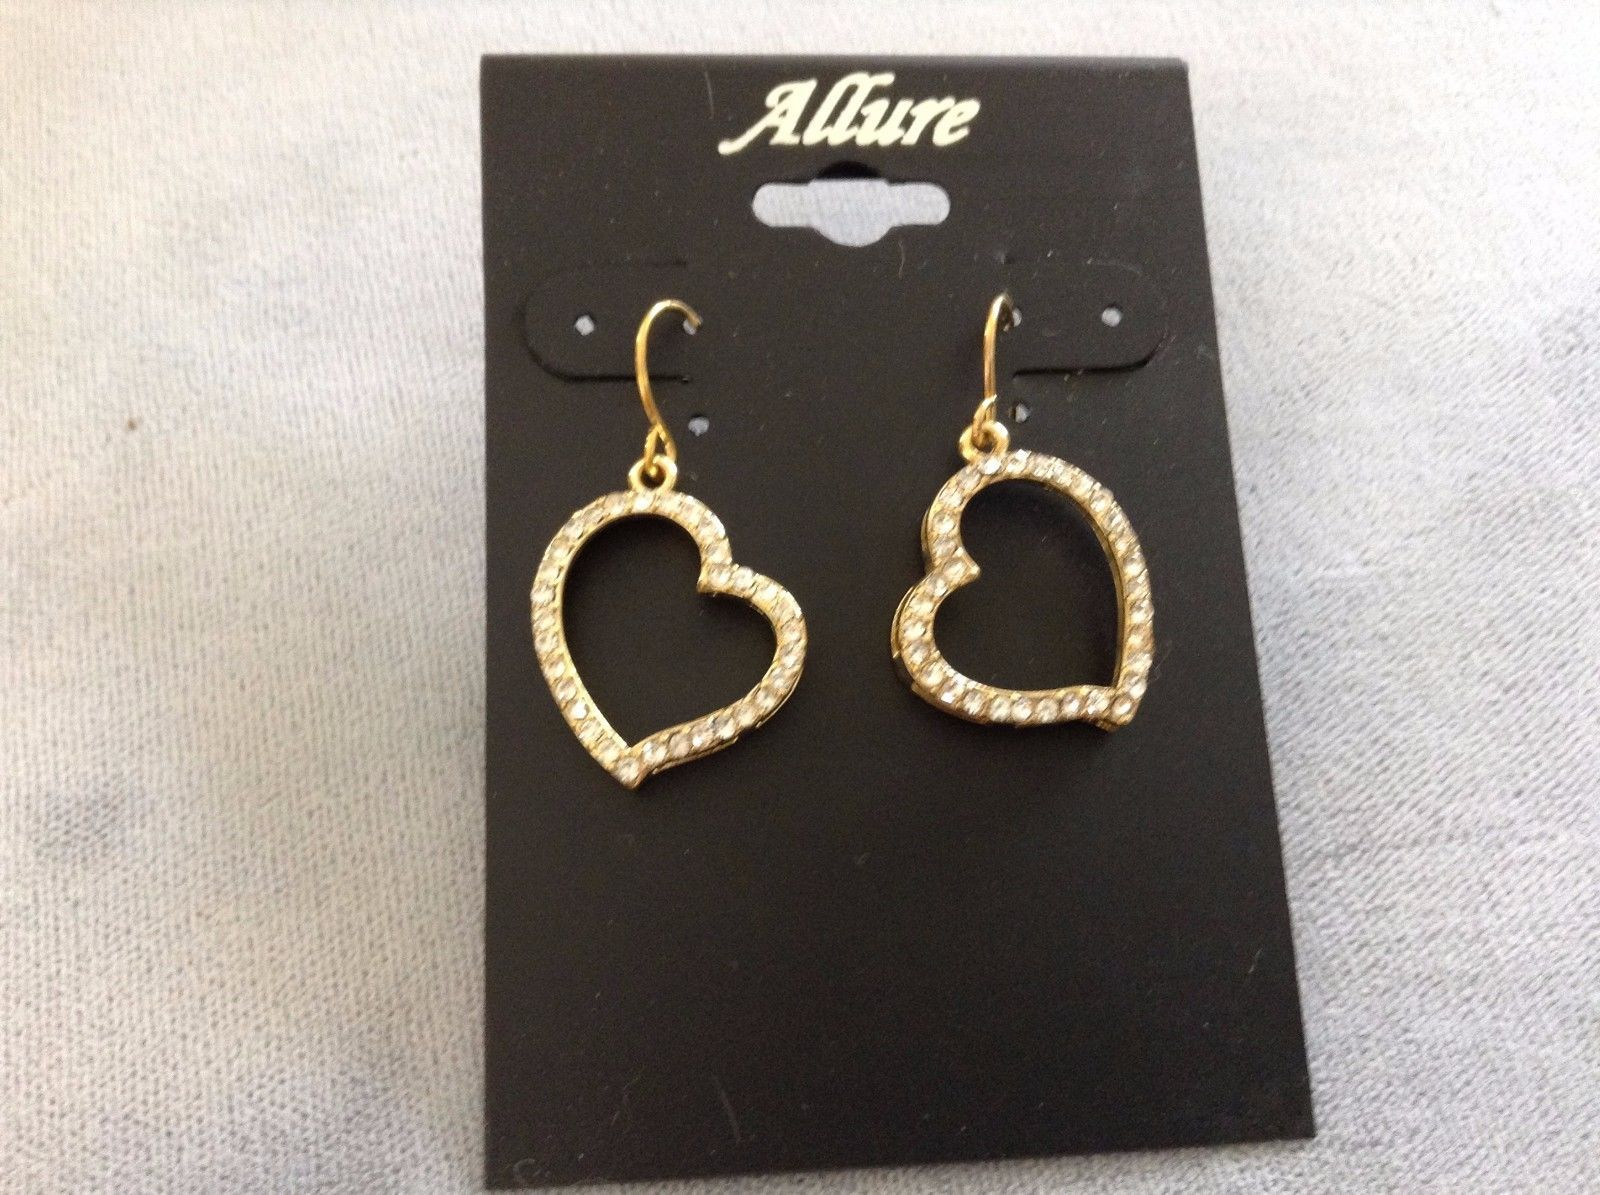 New Allure Earrings Gold Toned Heart Shaped Earrings with Diamonds